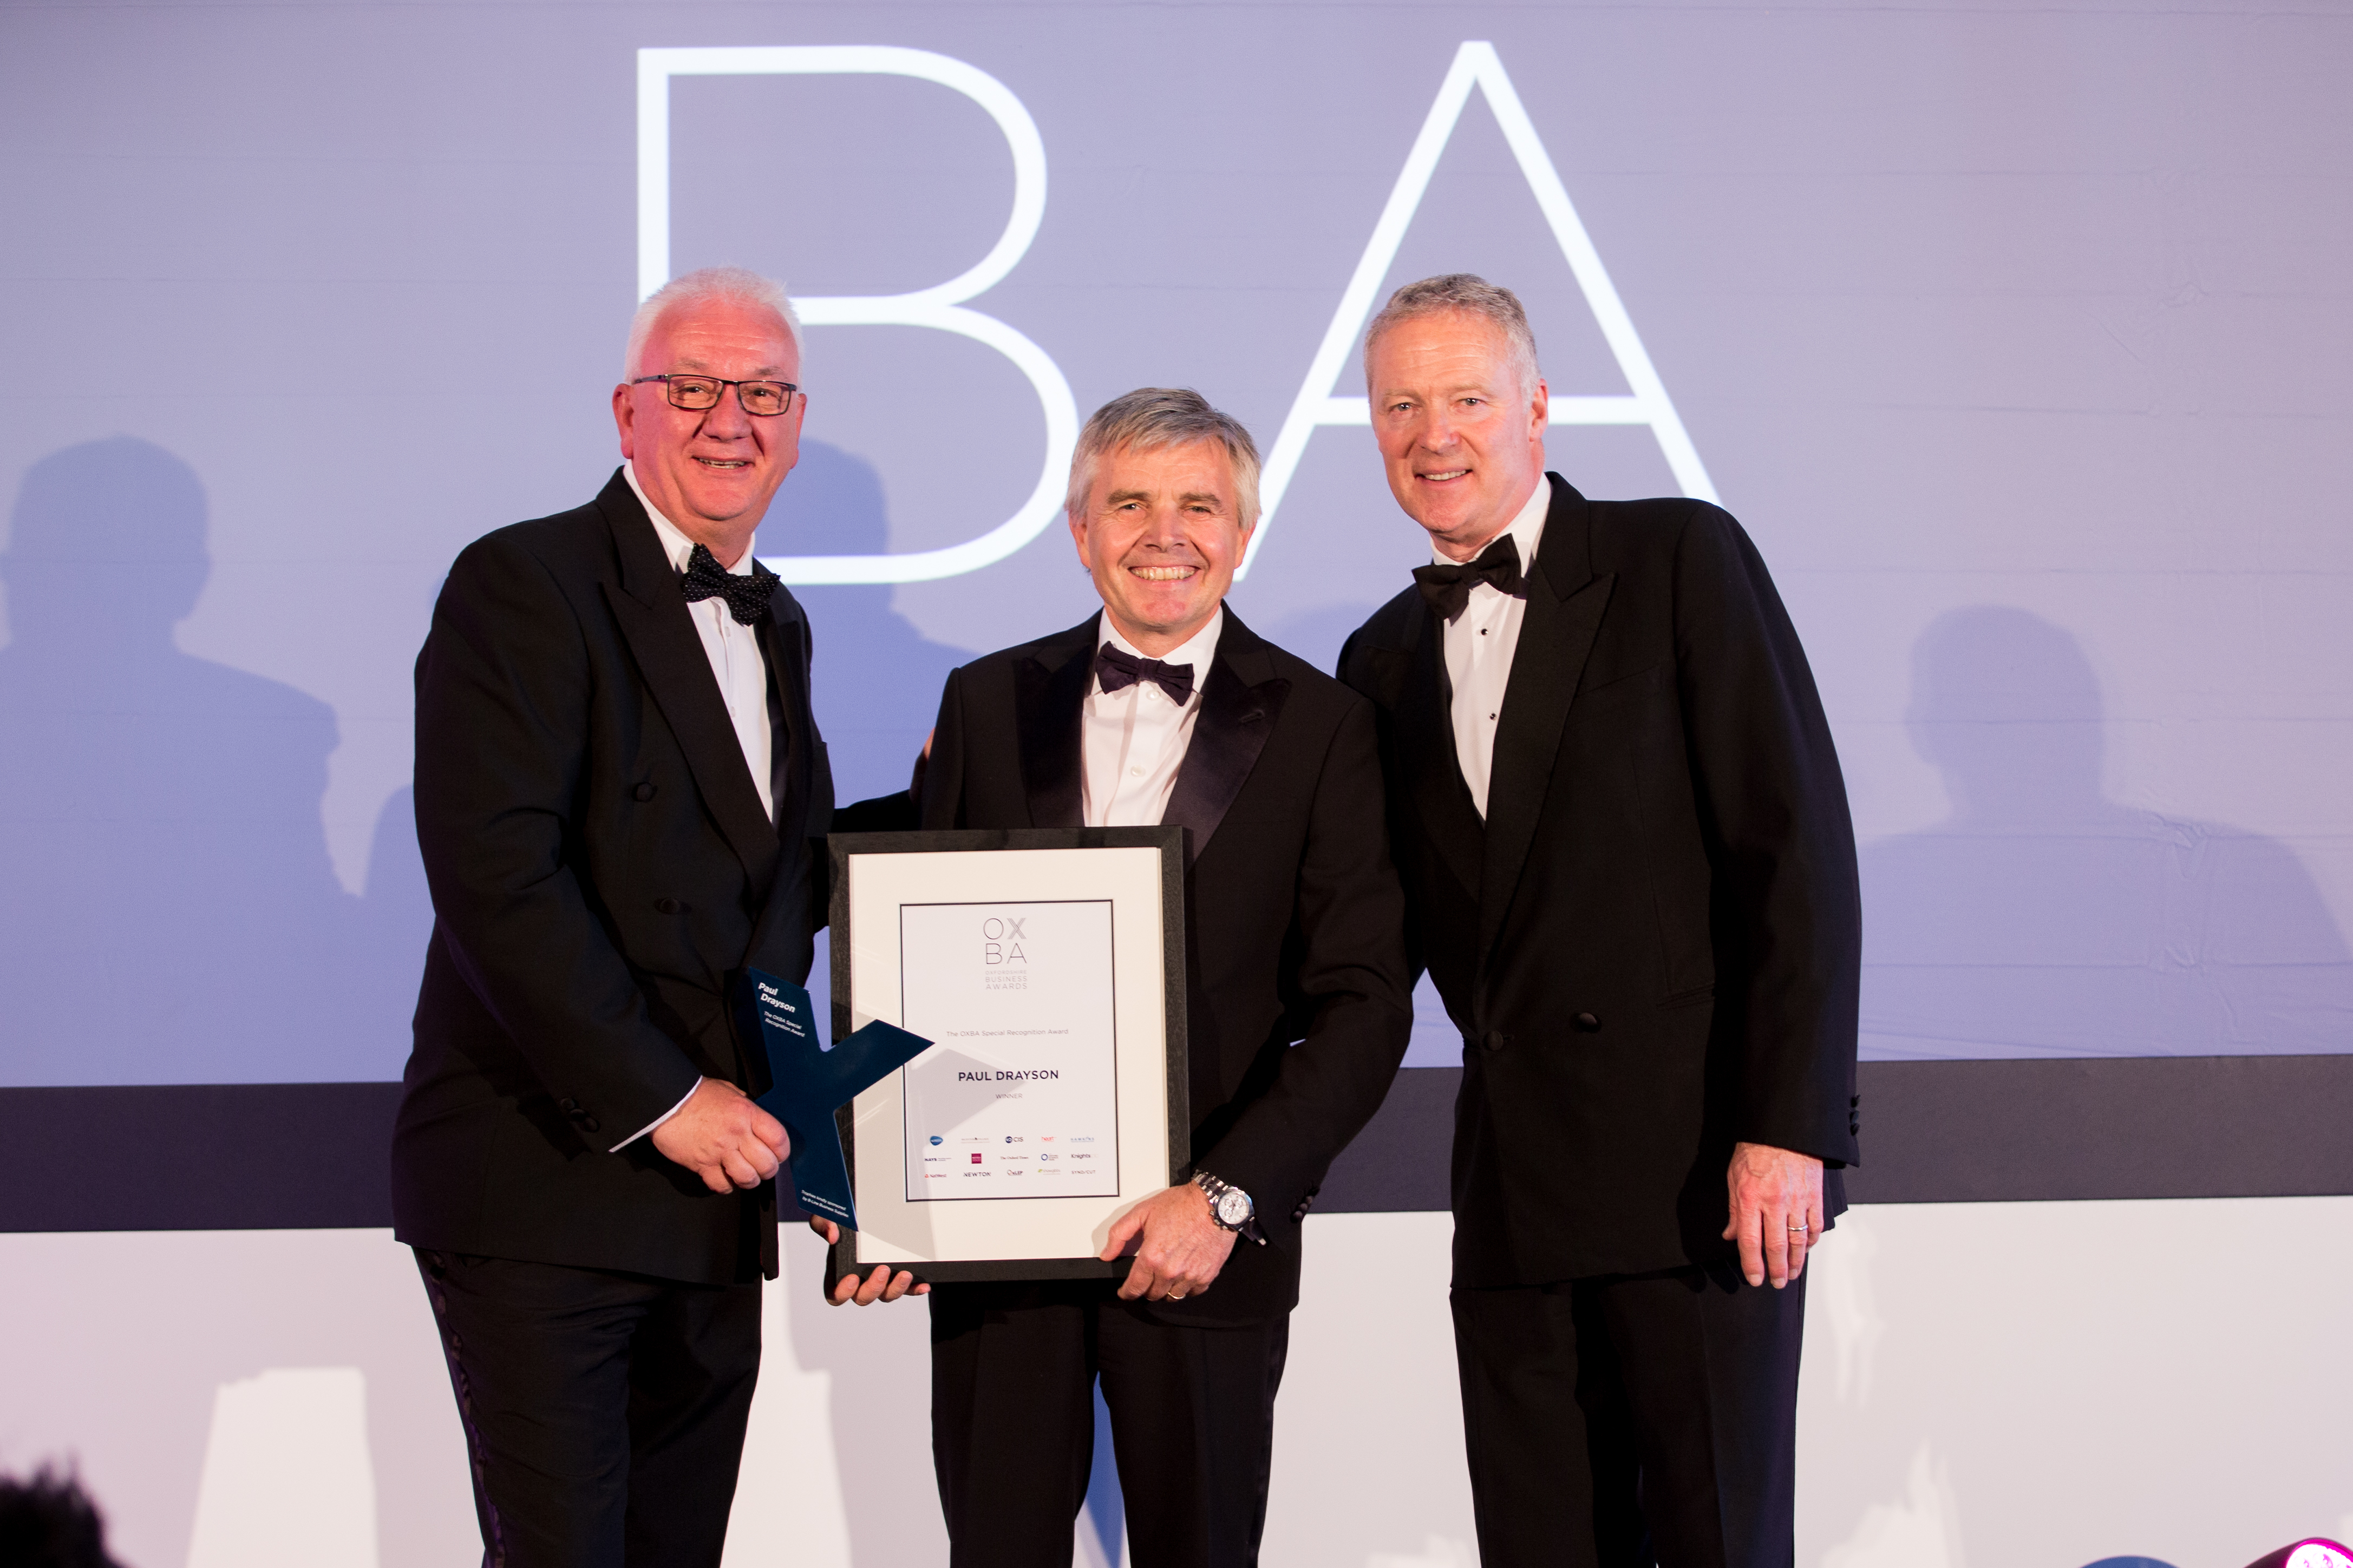 The OXBA Special Recognition Award